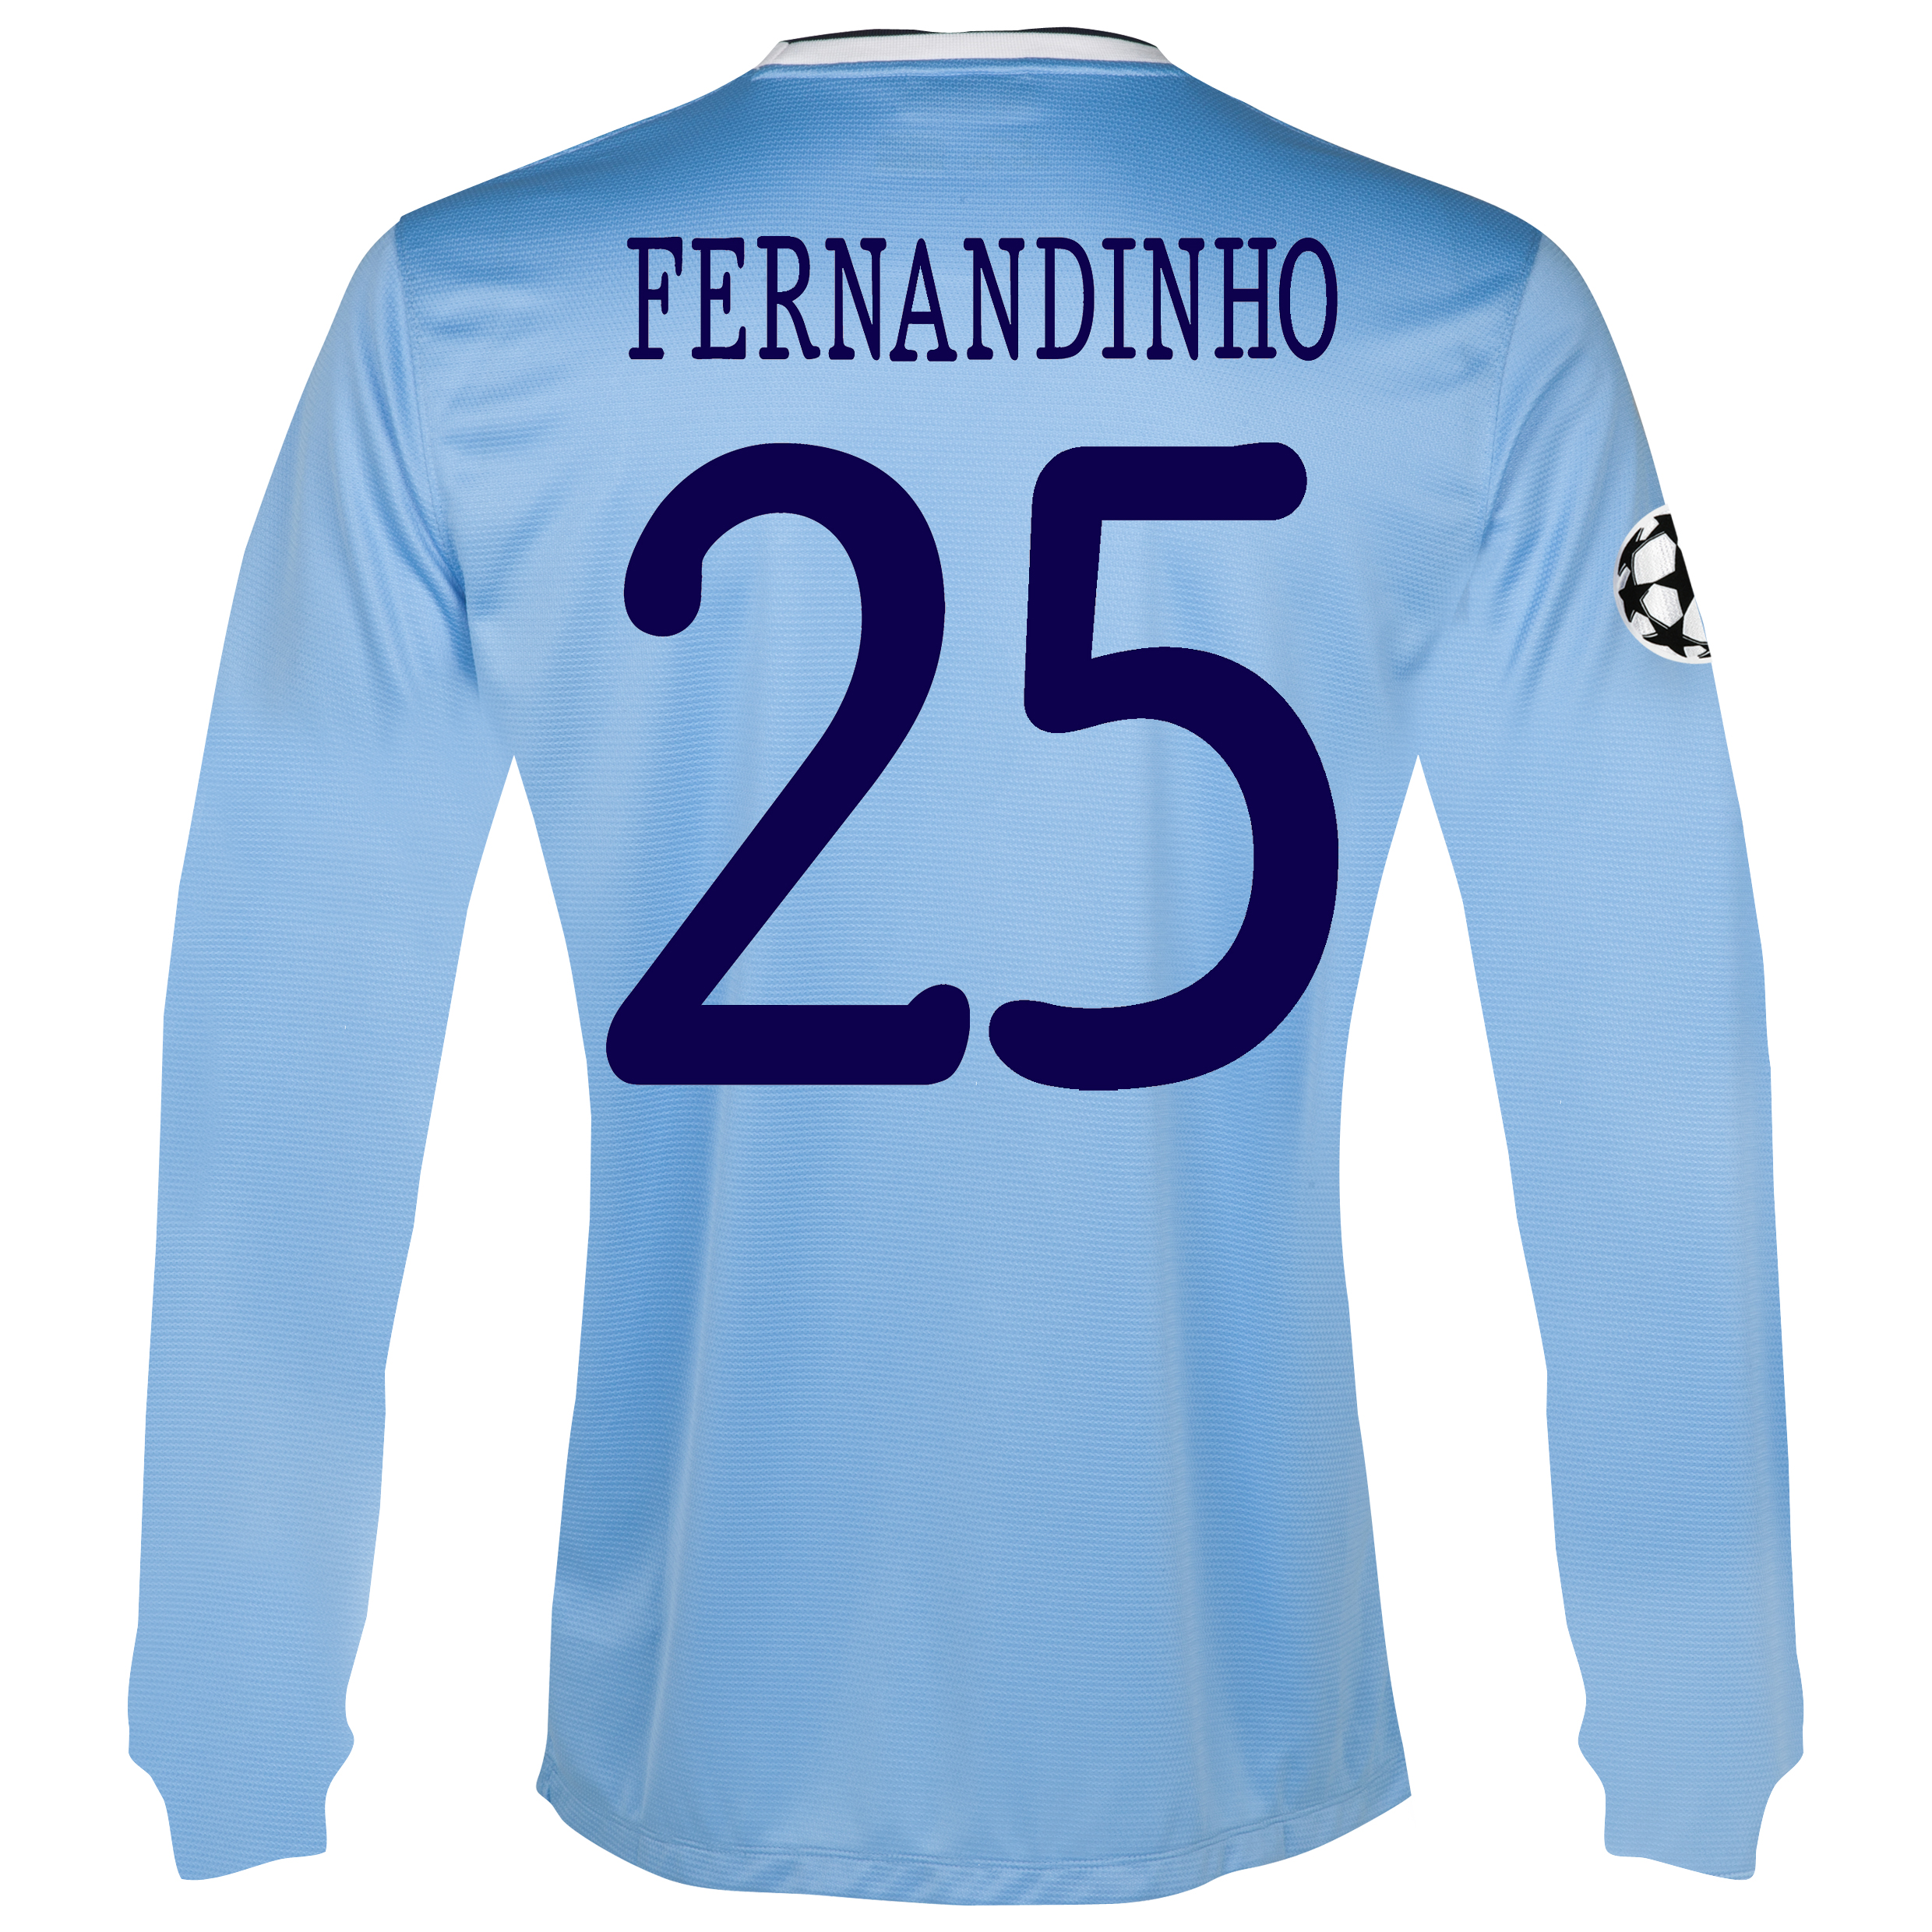 Manchester City UEFA Champions League Home Shirt 2013/14 - Long Sleeved with Fernandinho 25 printing